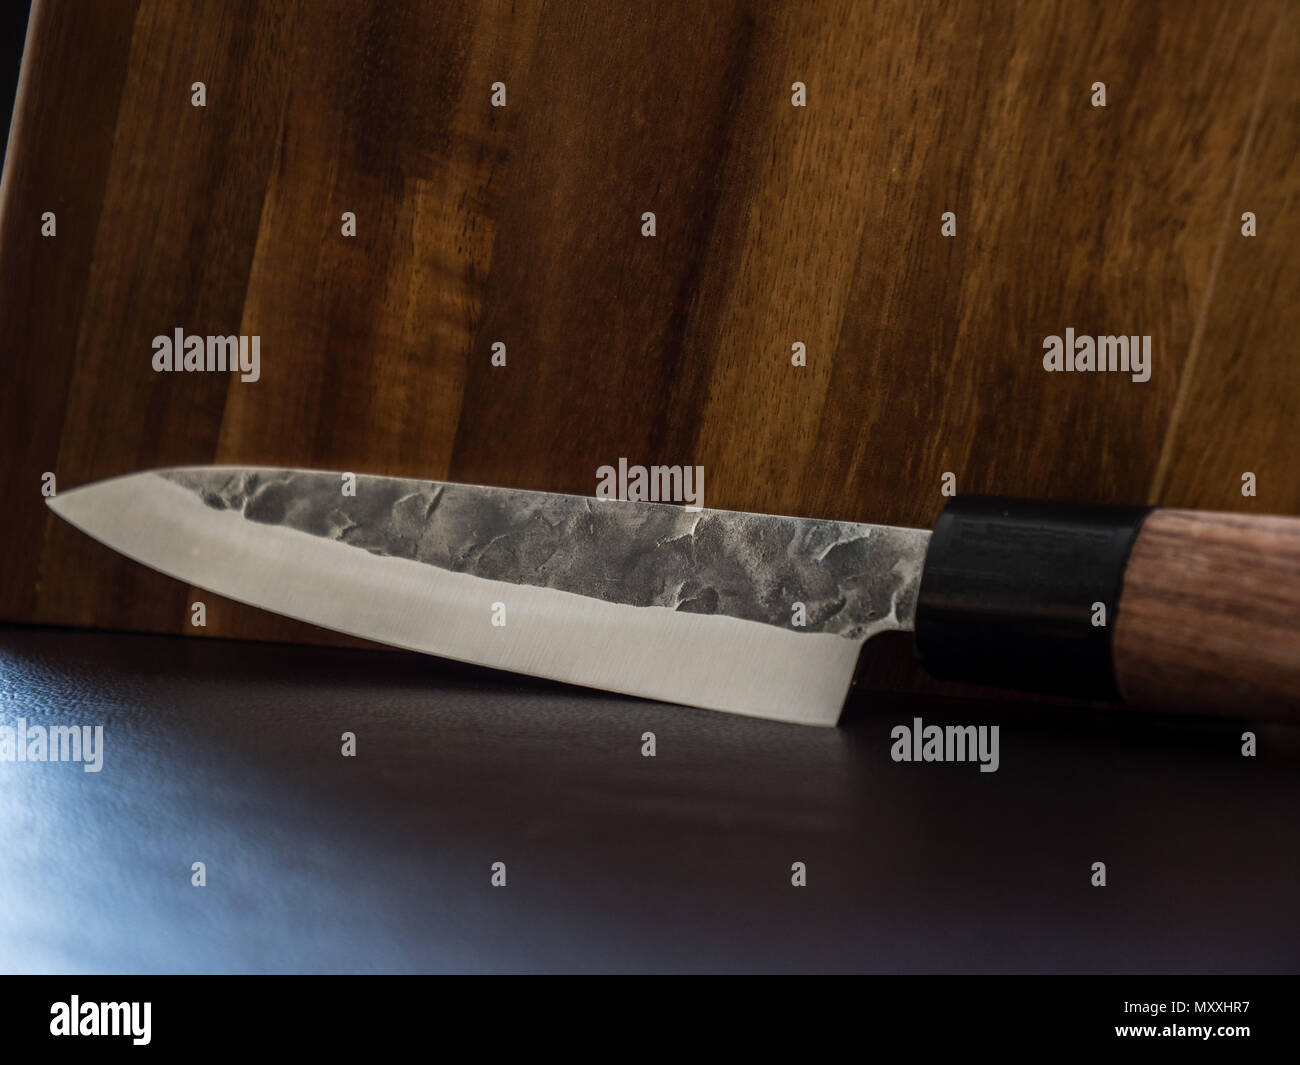 Knife with wood background damask leather surface Stock Photo